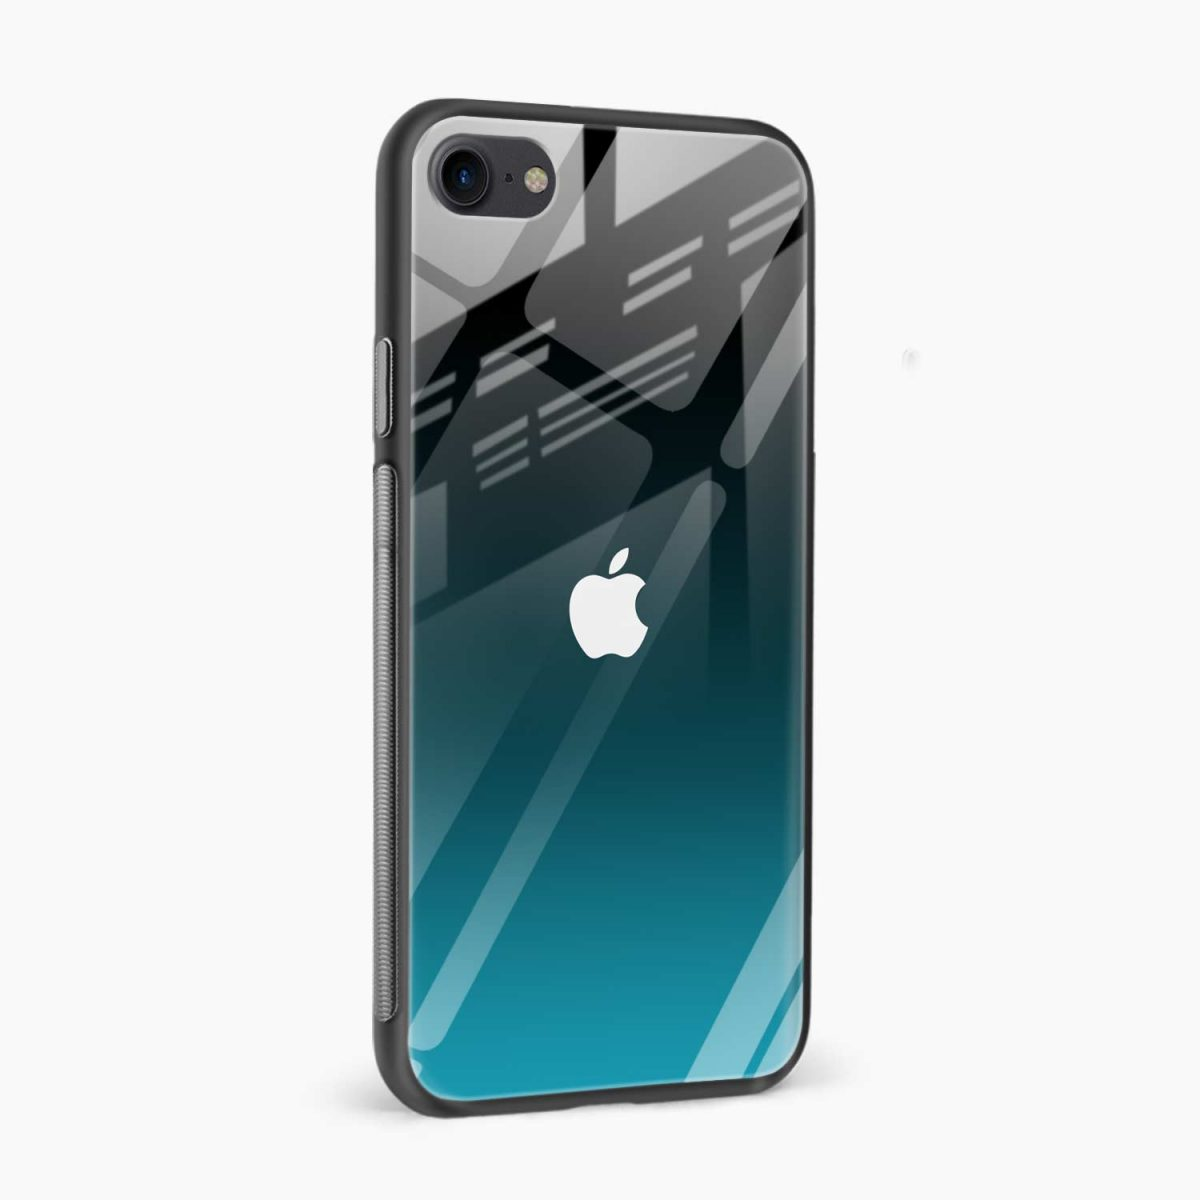 ultramarine glass front view apple iphone 6 7 8 se back cover 4